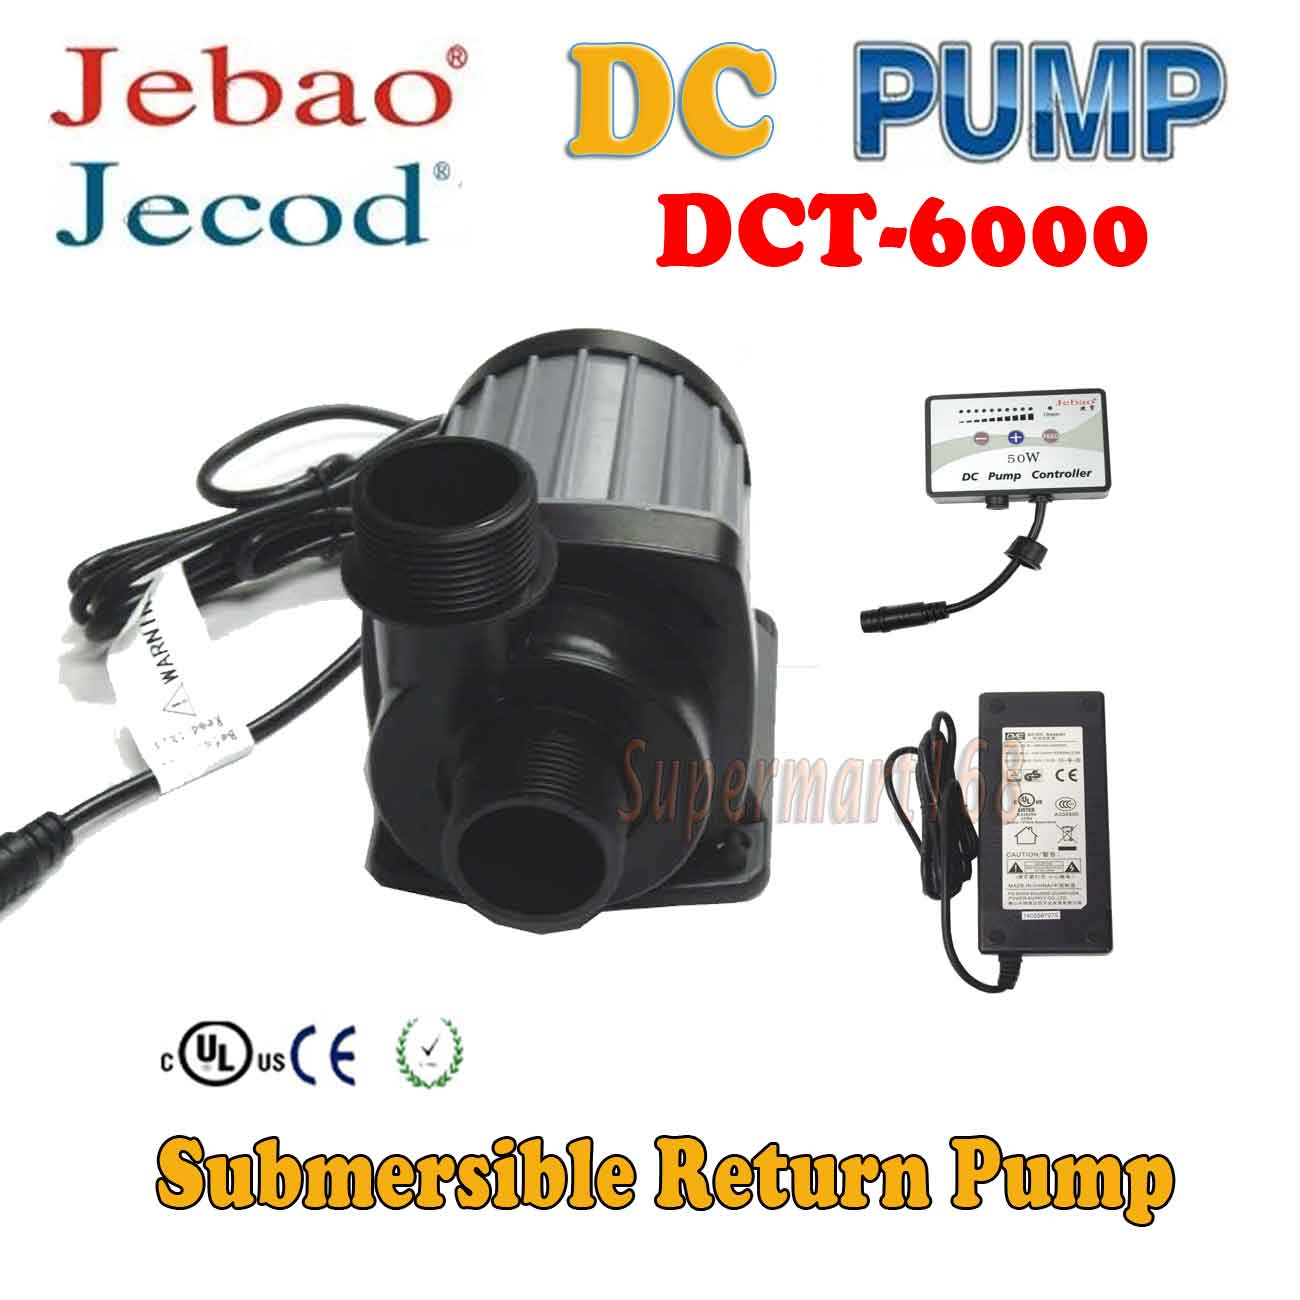 Jebao/Jecod Circulation Pump  DC DCT-6000 for Reef Tank S...